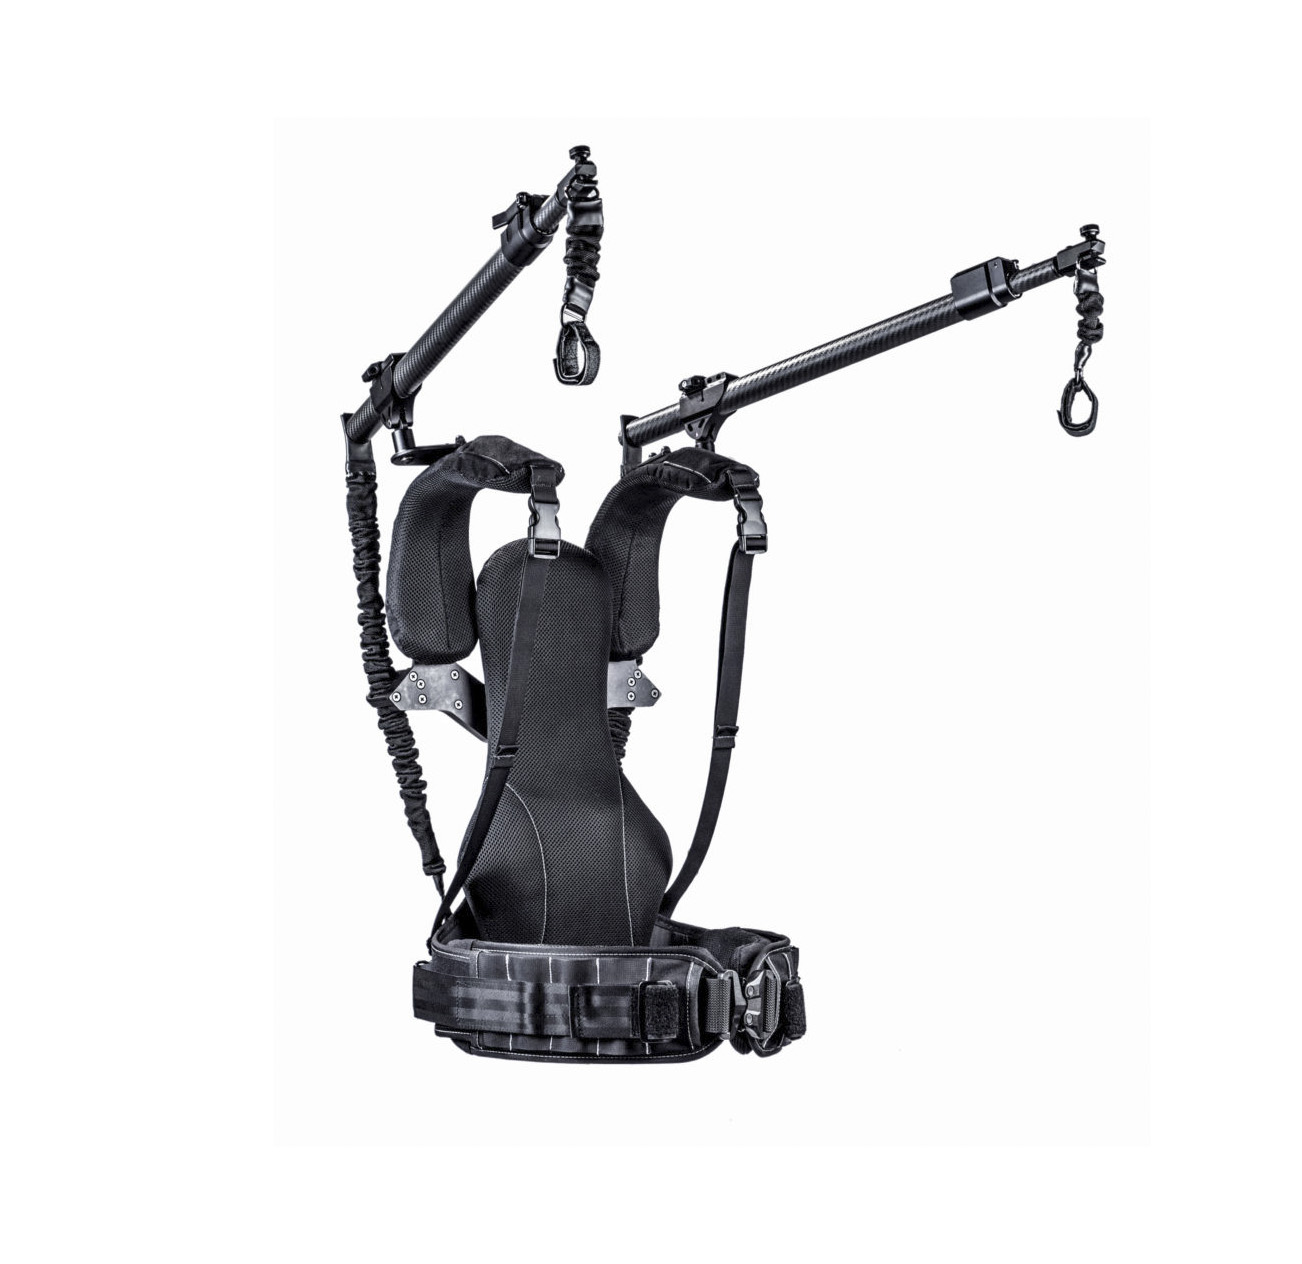 Image of ReadyRig + ProArms